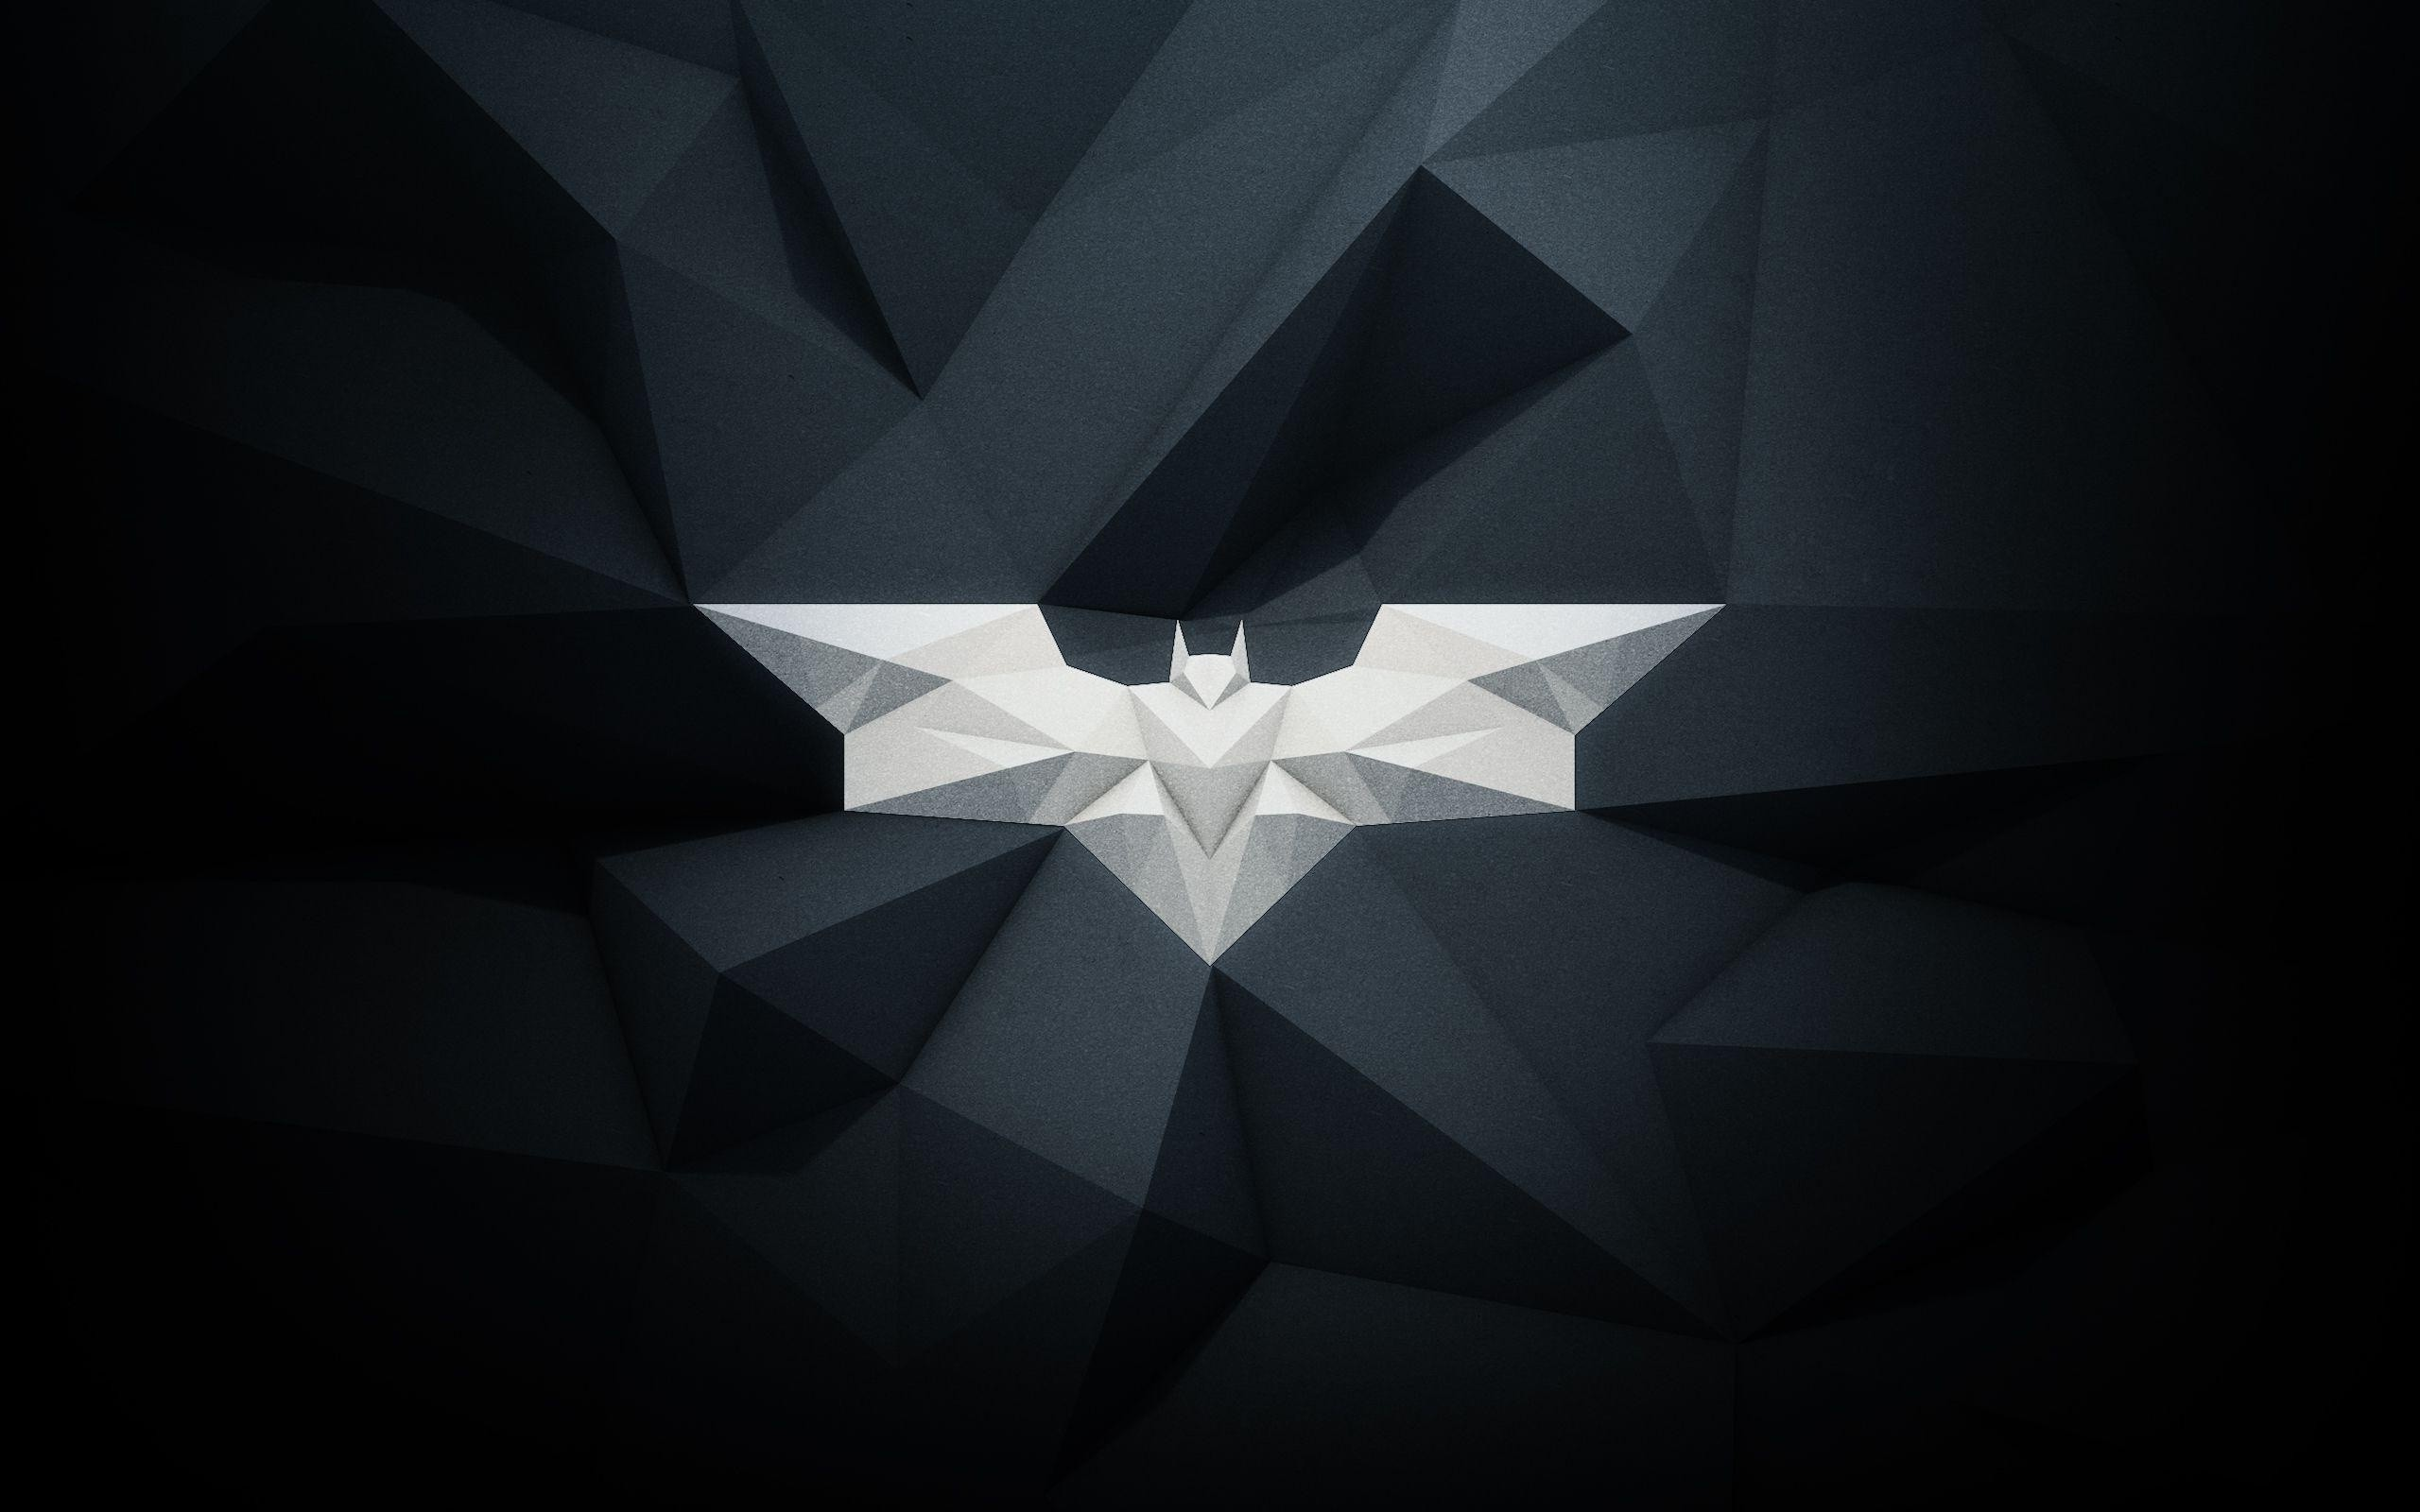 Wallpaper Batman Logo - WallpaperSafari